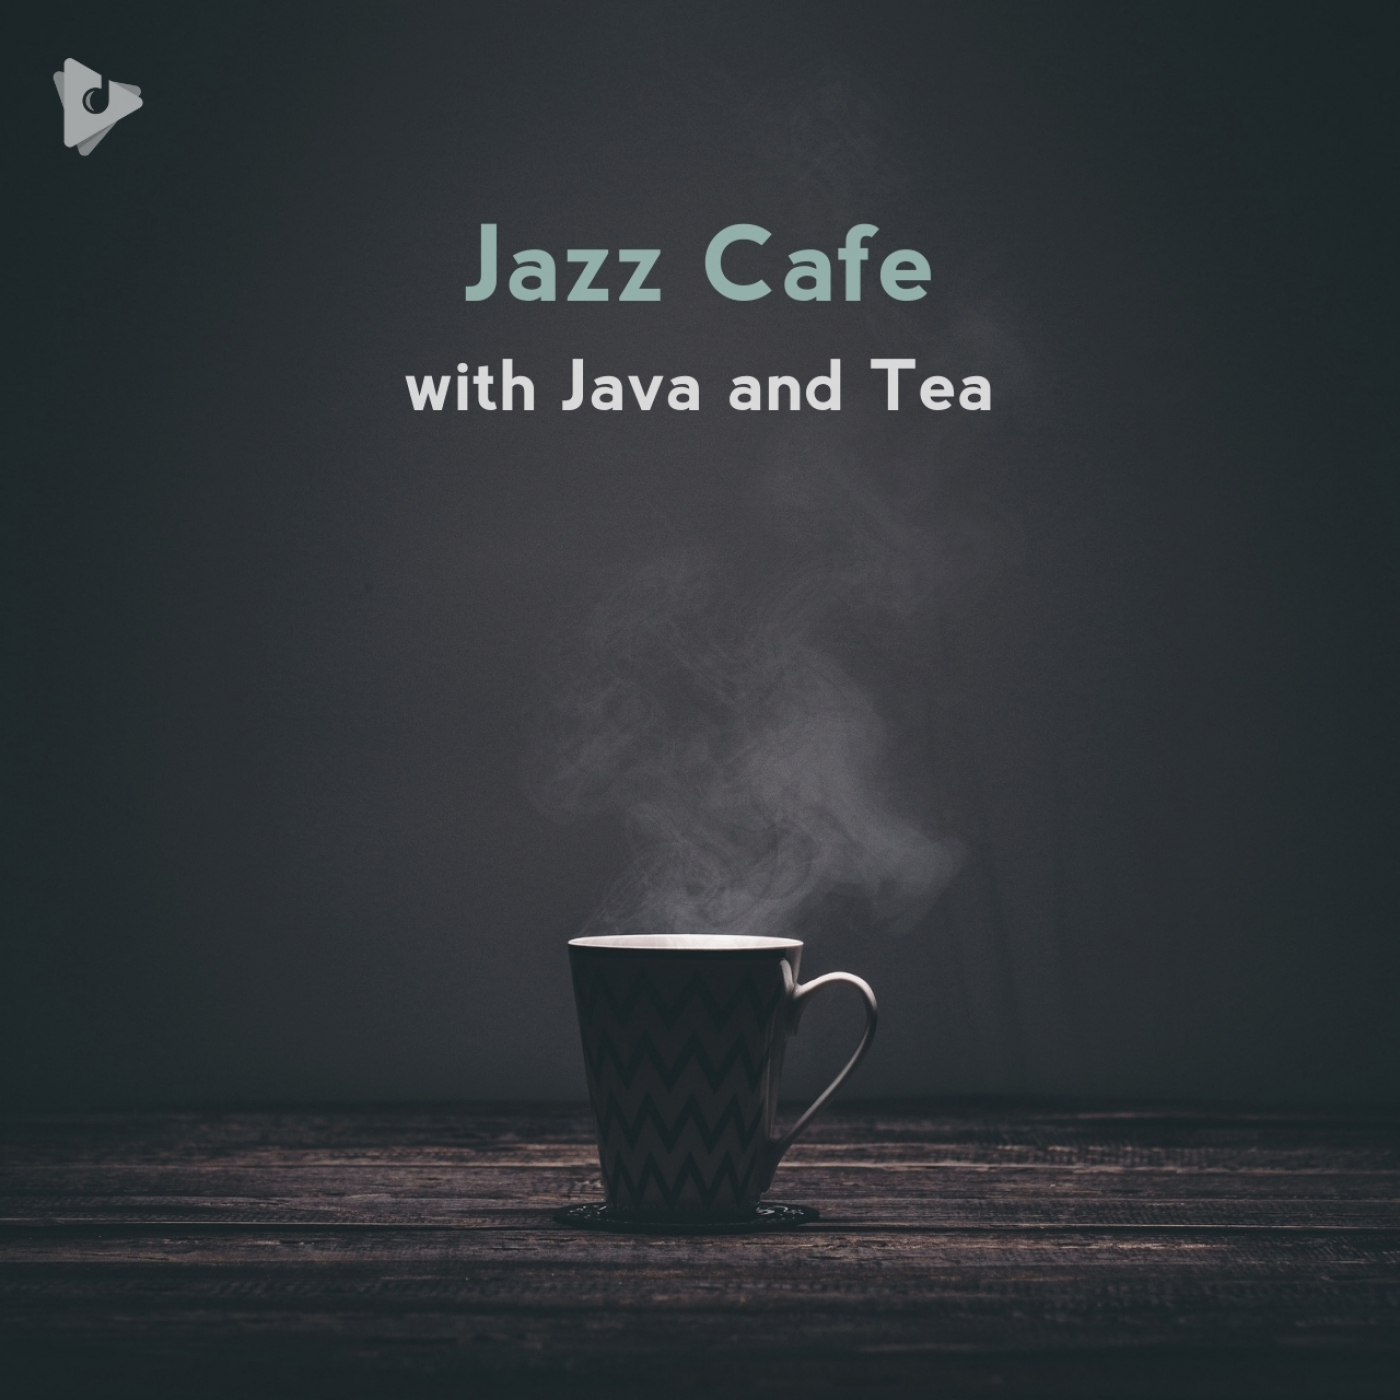 Jazz Cafe with Java and Tea